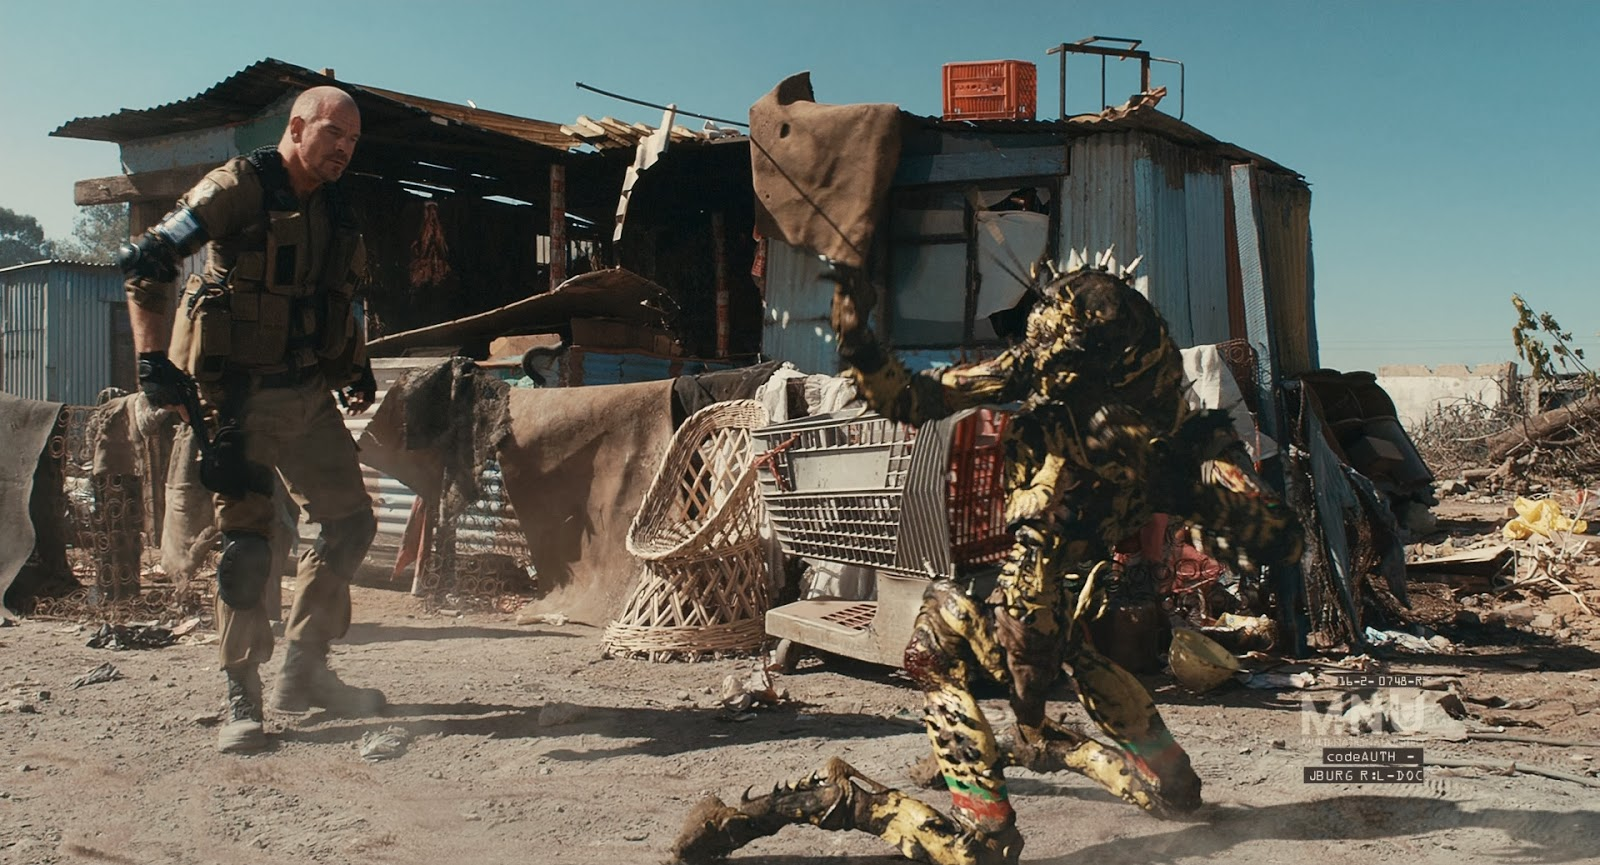 Photo from Neill Blomkamp's District 9